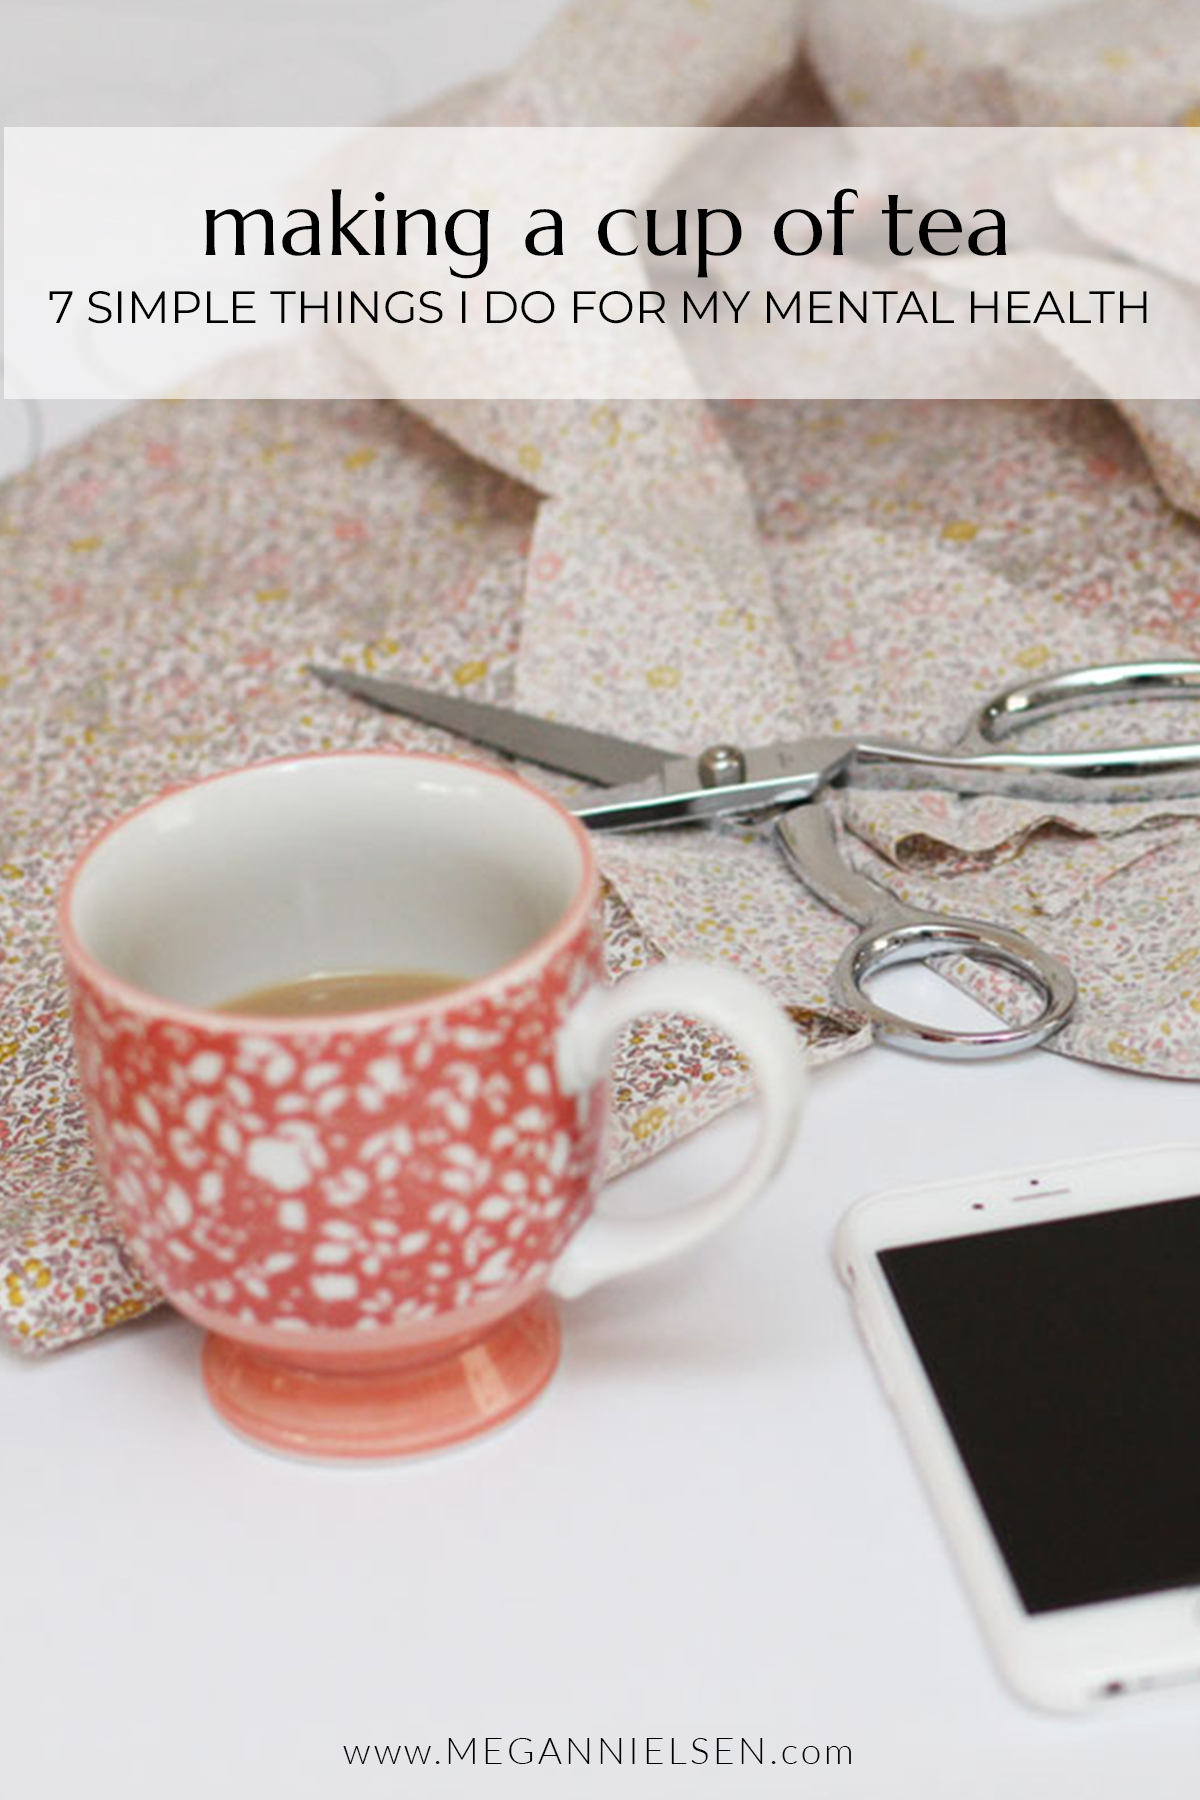 7 Simple Things I Do For My Mental Health | Making a Cup of Tea